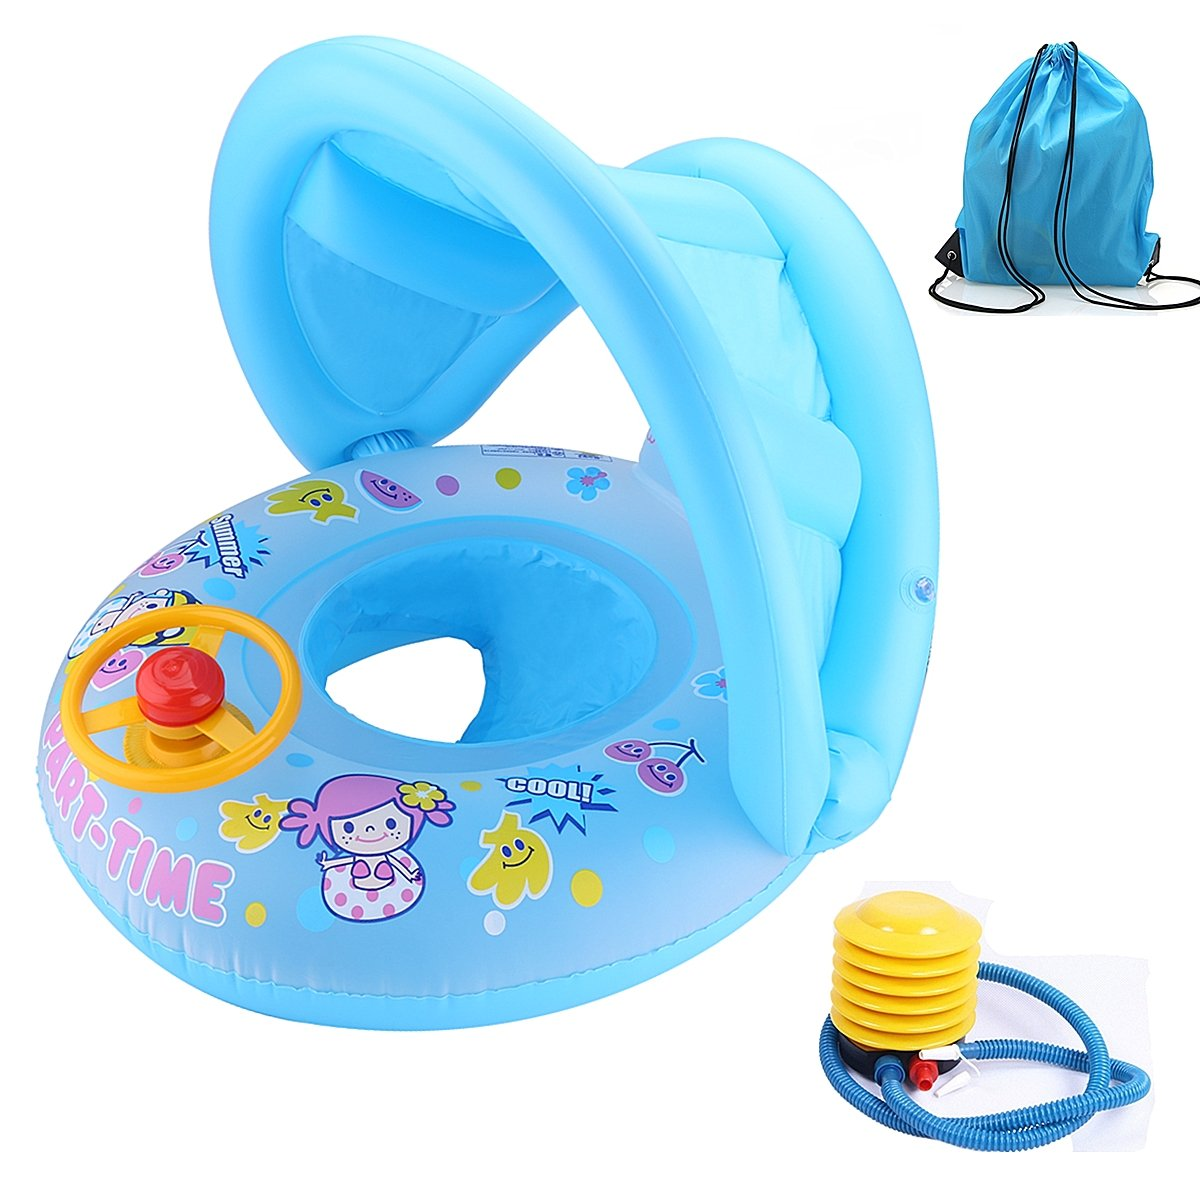 Toddler Floats for Pool: Amazon.co.uk